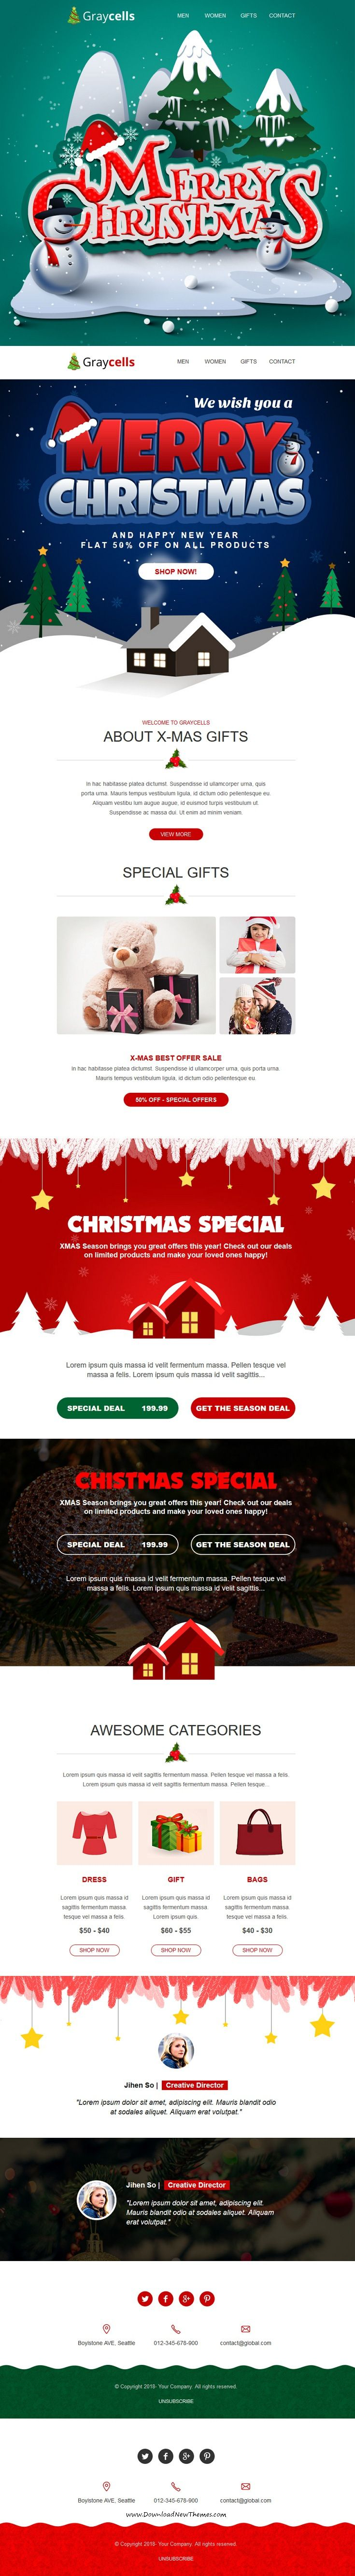 Best Christmas Decorations Ideas And Creative Templates Images